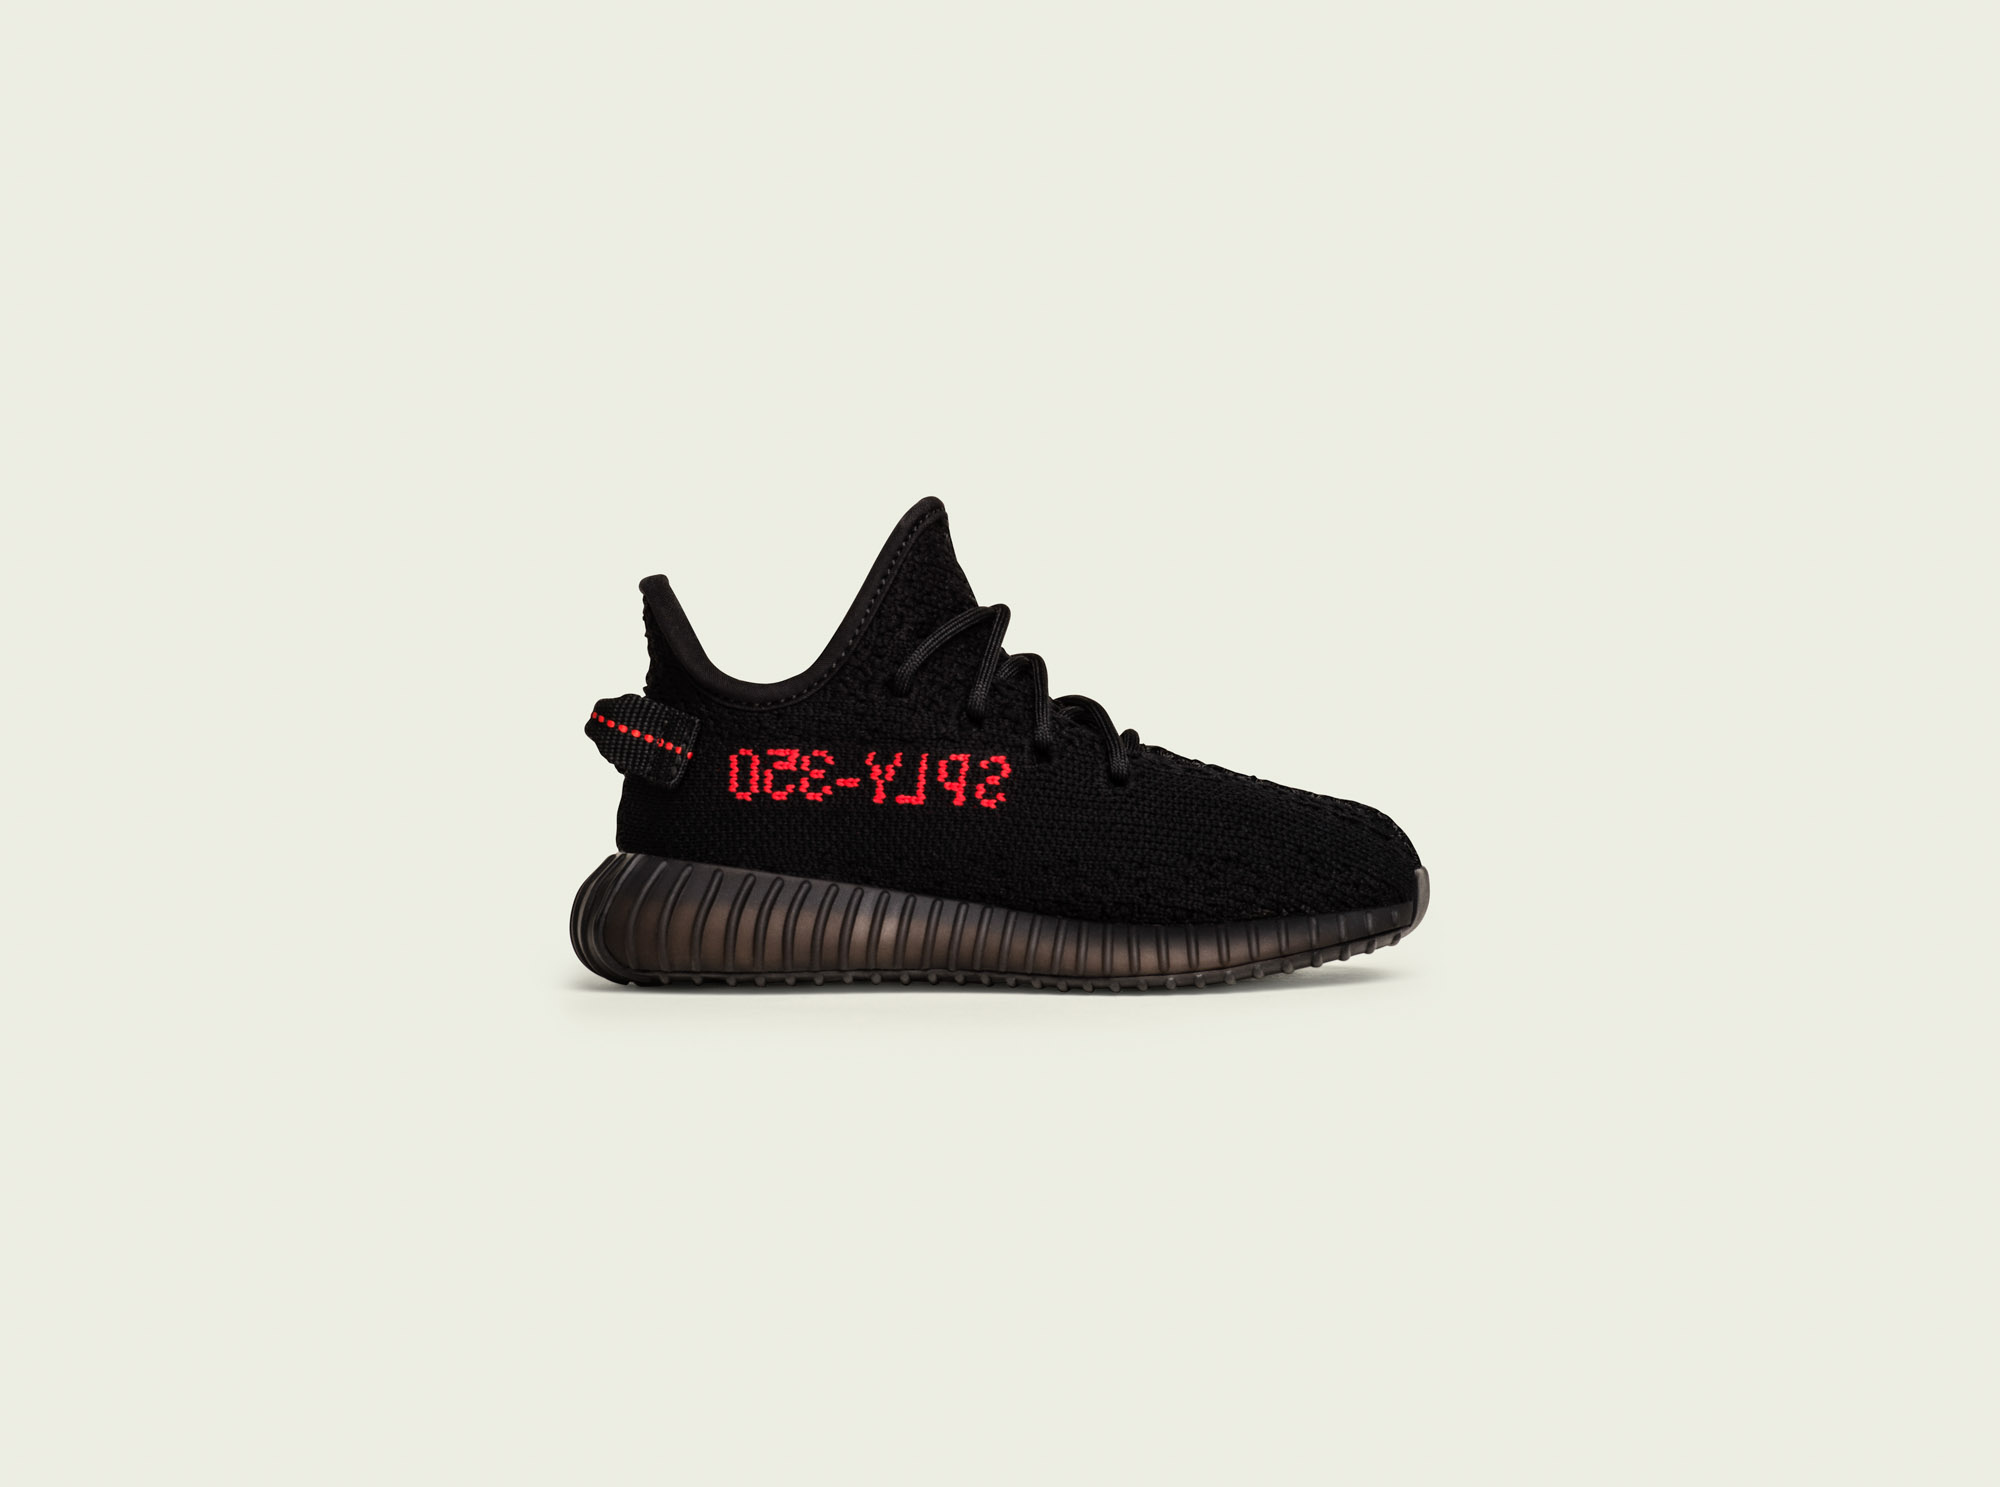 adidas Yeezy Boost 350 V2 Black Red CP9652 6